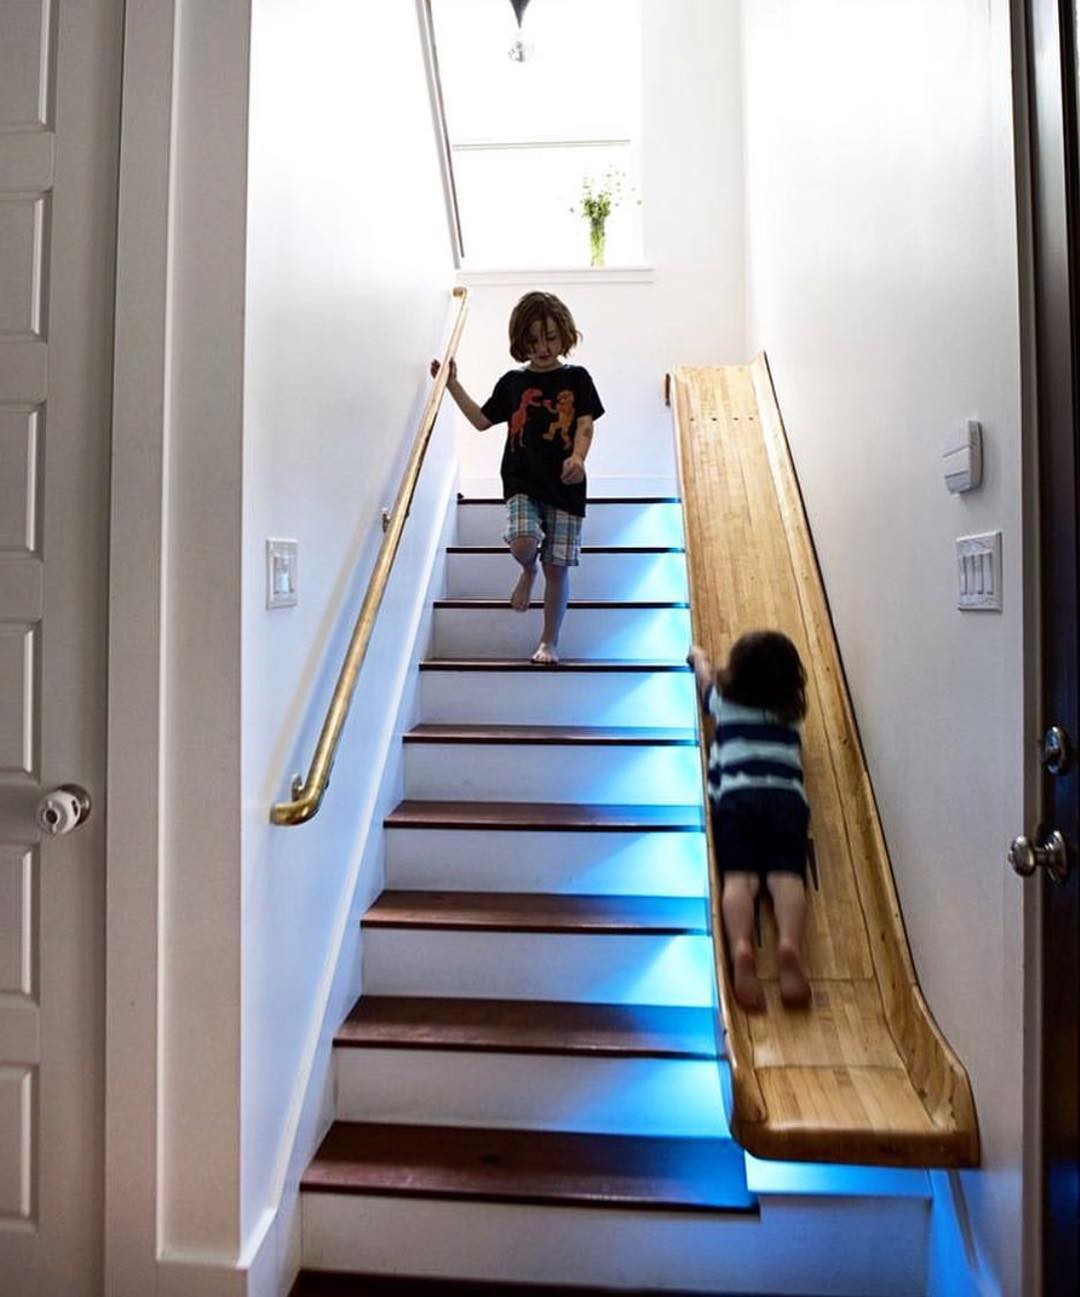 2 - Cheer your kids up with a fun slide instead of a boring staircase.